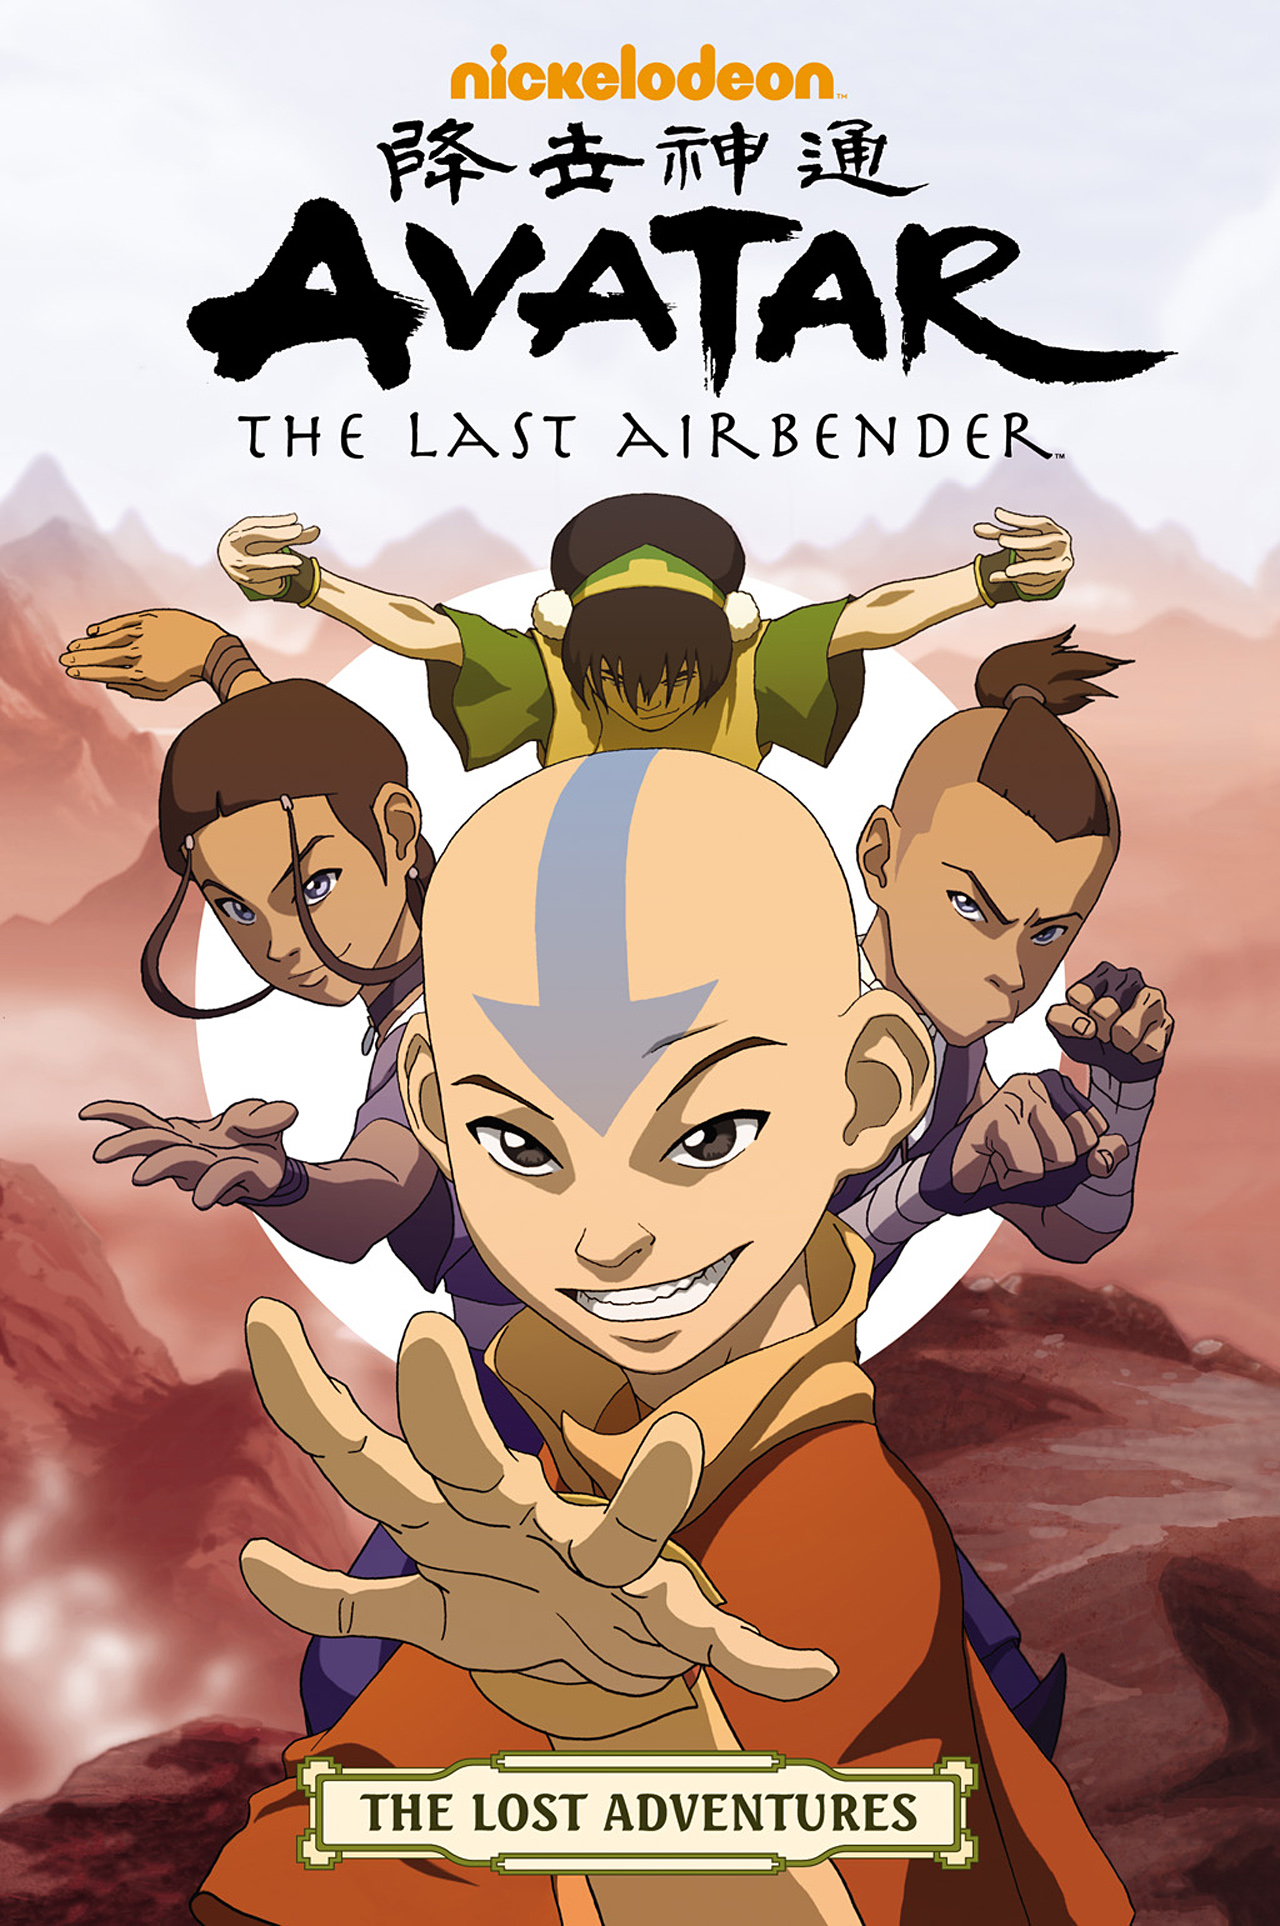 Nickelodeon Avatar: The Last Airbender - The Lost Adventures chap full pic 1